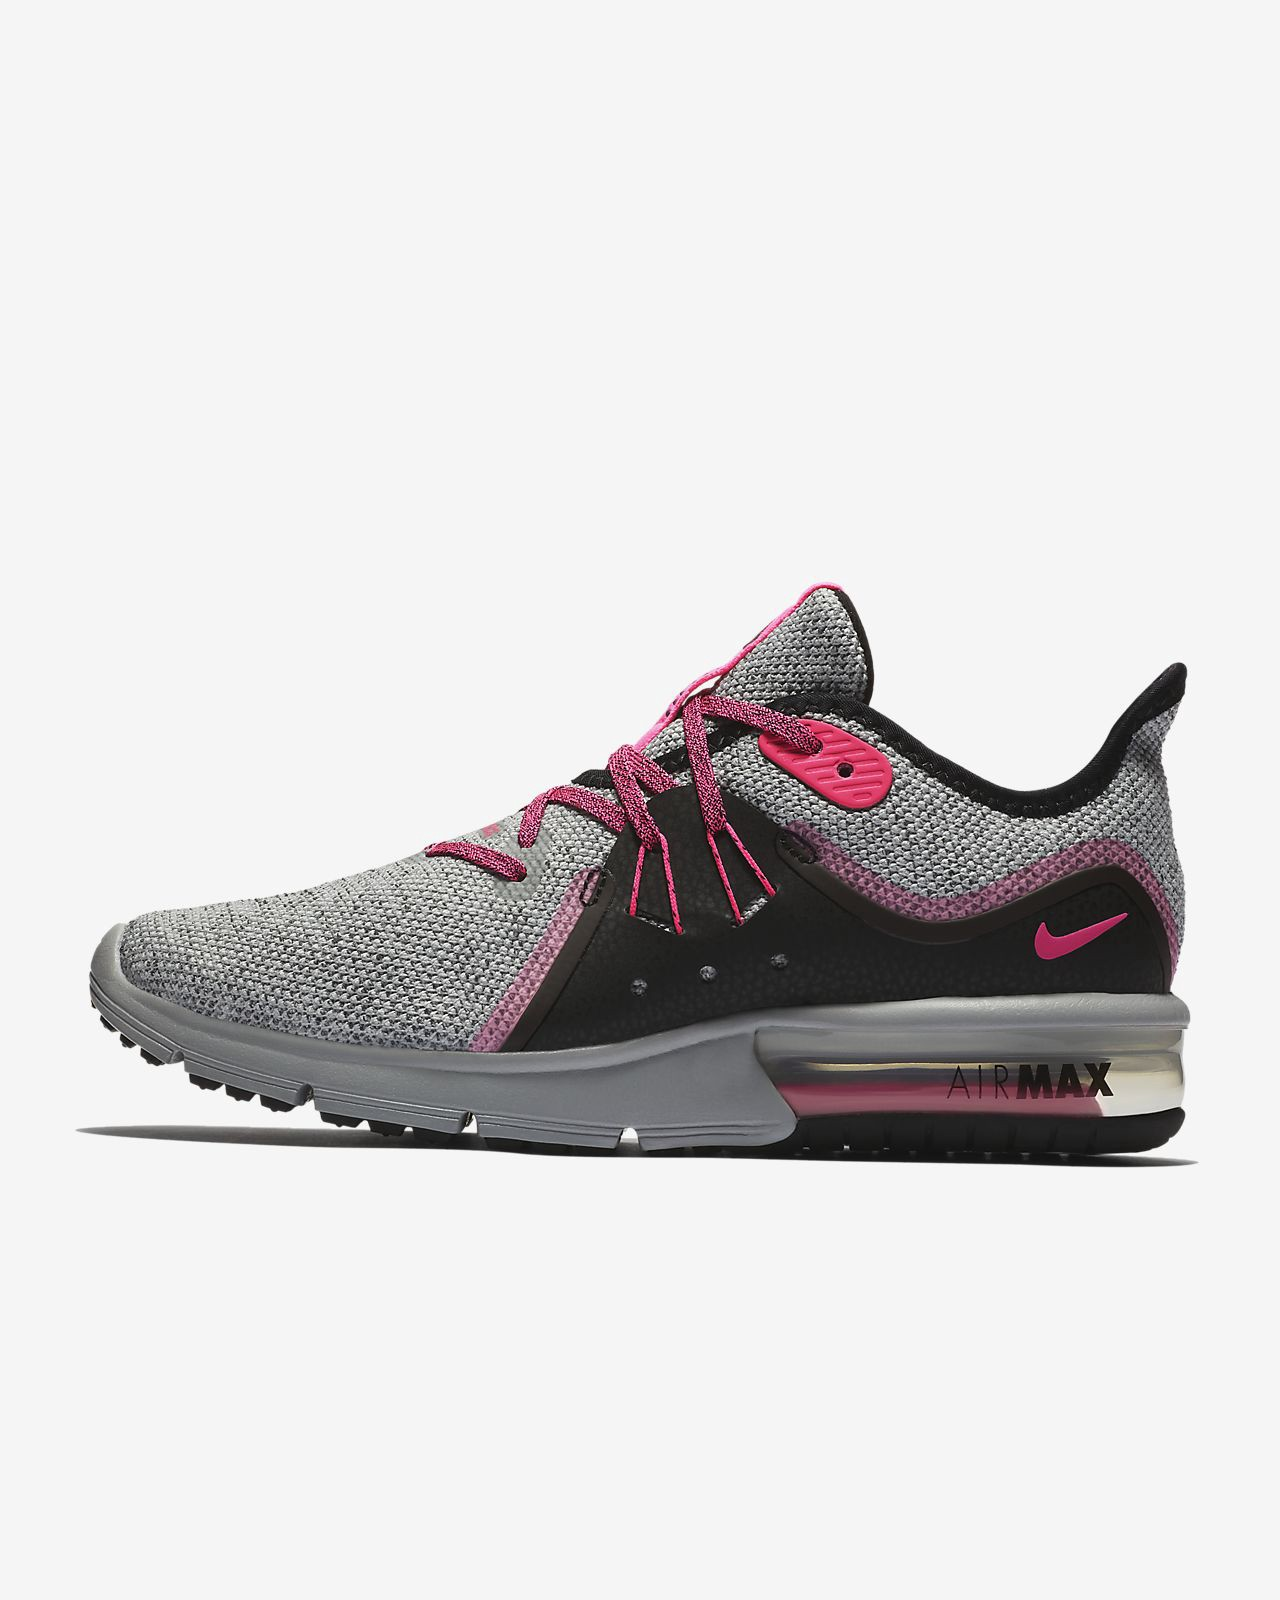 79c3f1b07f Nike Air Max Sequent 3 Women's Running Shoe - 6.5 | Products | Nike ...